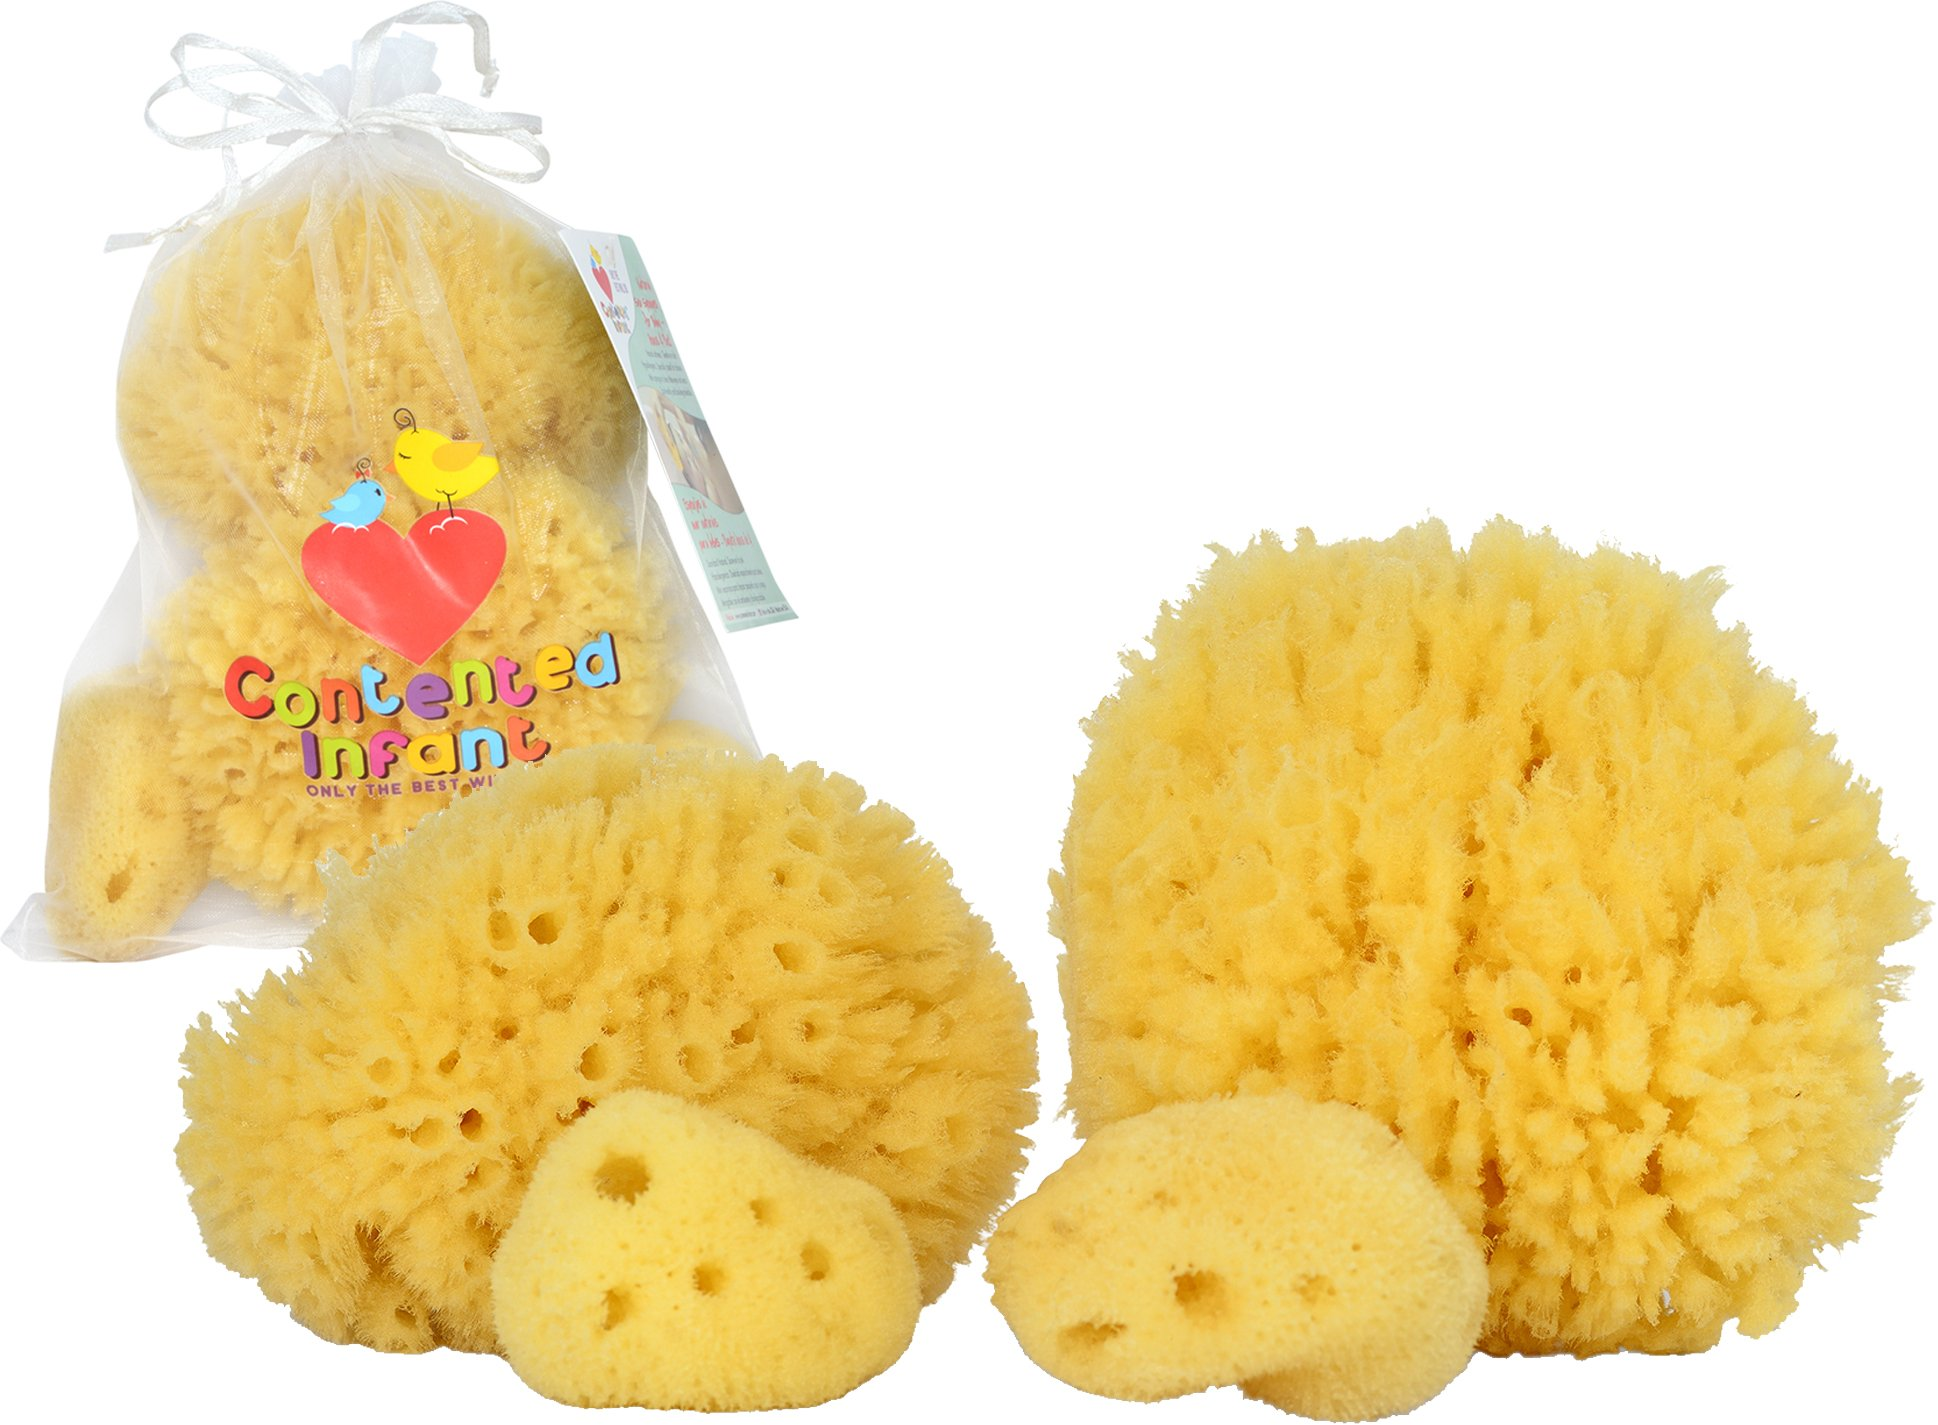 Natural Sea Sponges for Babies - 4 Pack Bath Care Set, Gentle Hypoallergenic, Great for Bathing Washing the Body Eyes & Ears, Also for Newborn Toddler & Kids; Baby Shower Spa Gift by Contented Infant